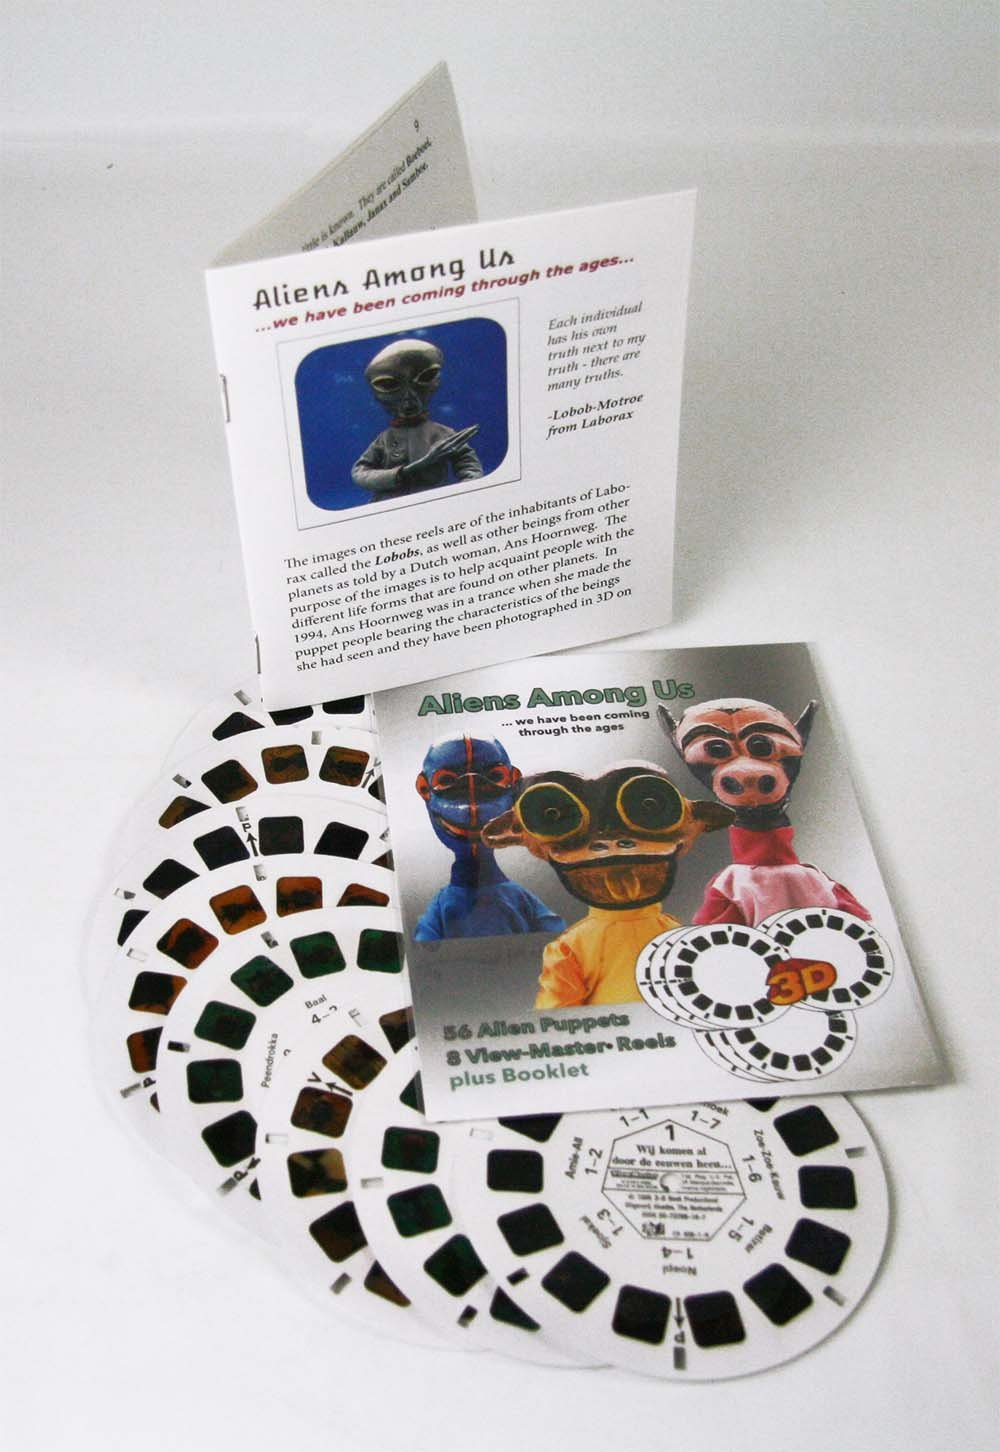 Aliens Among US - Classic View Master - 8 Reel Set for Classic ViewFinder Viewers - 56 3D Images by 3Dstereo ViewMaster (Image #1)